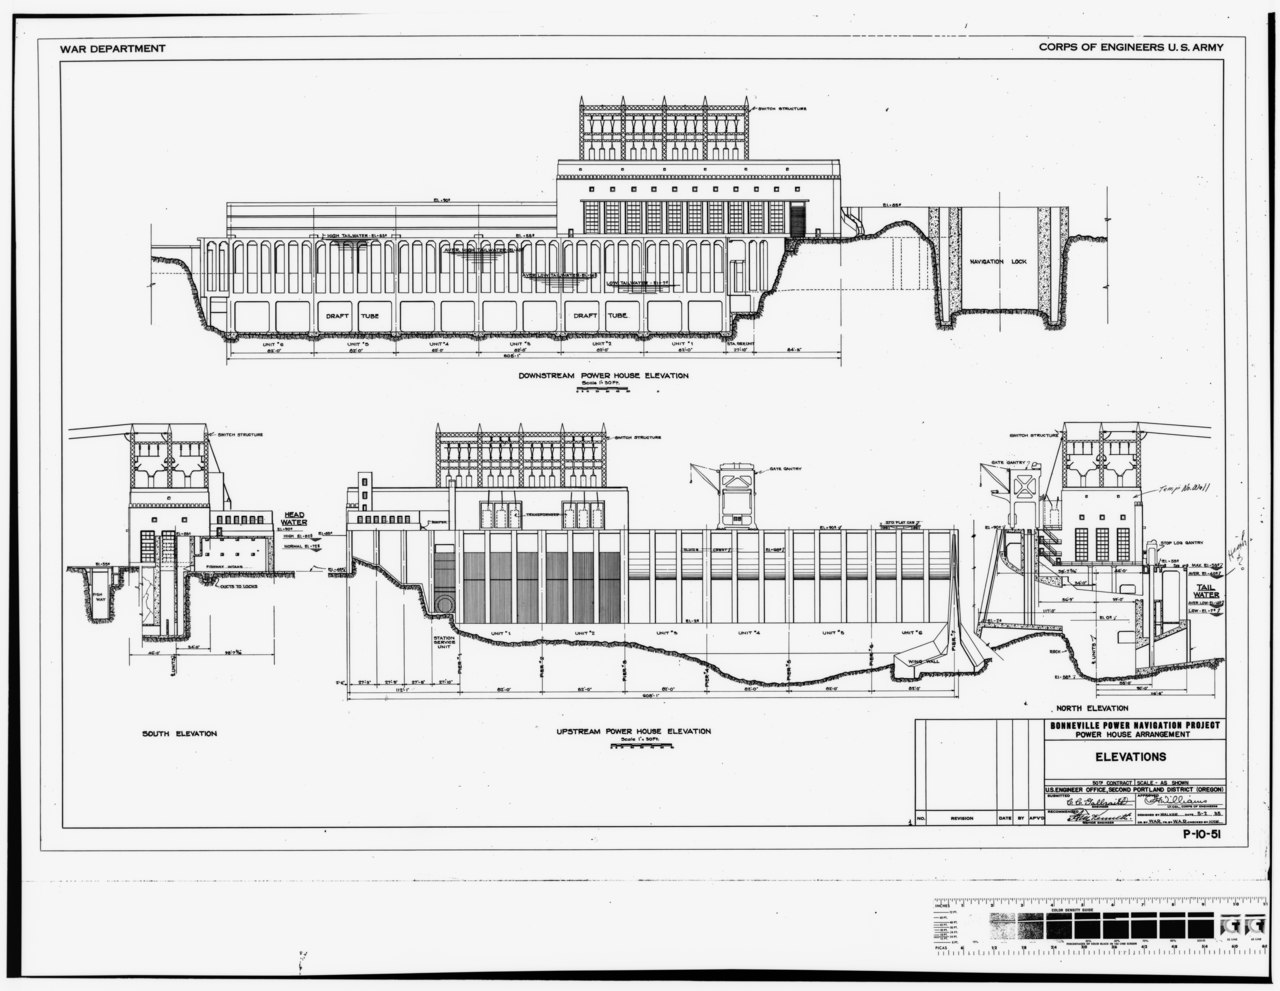 File Photocopy Of Original Construction Drawing Dated 2